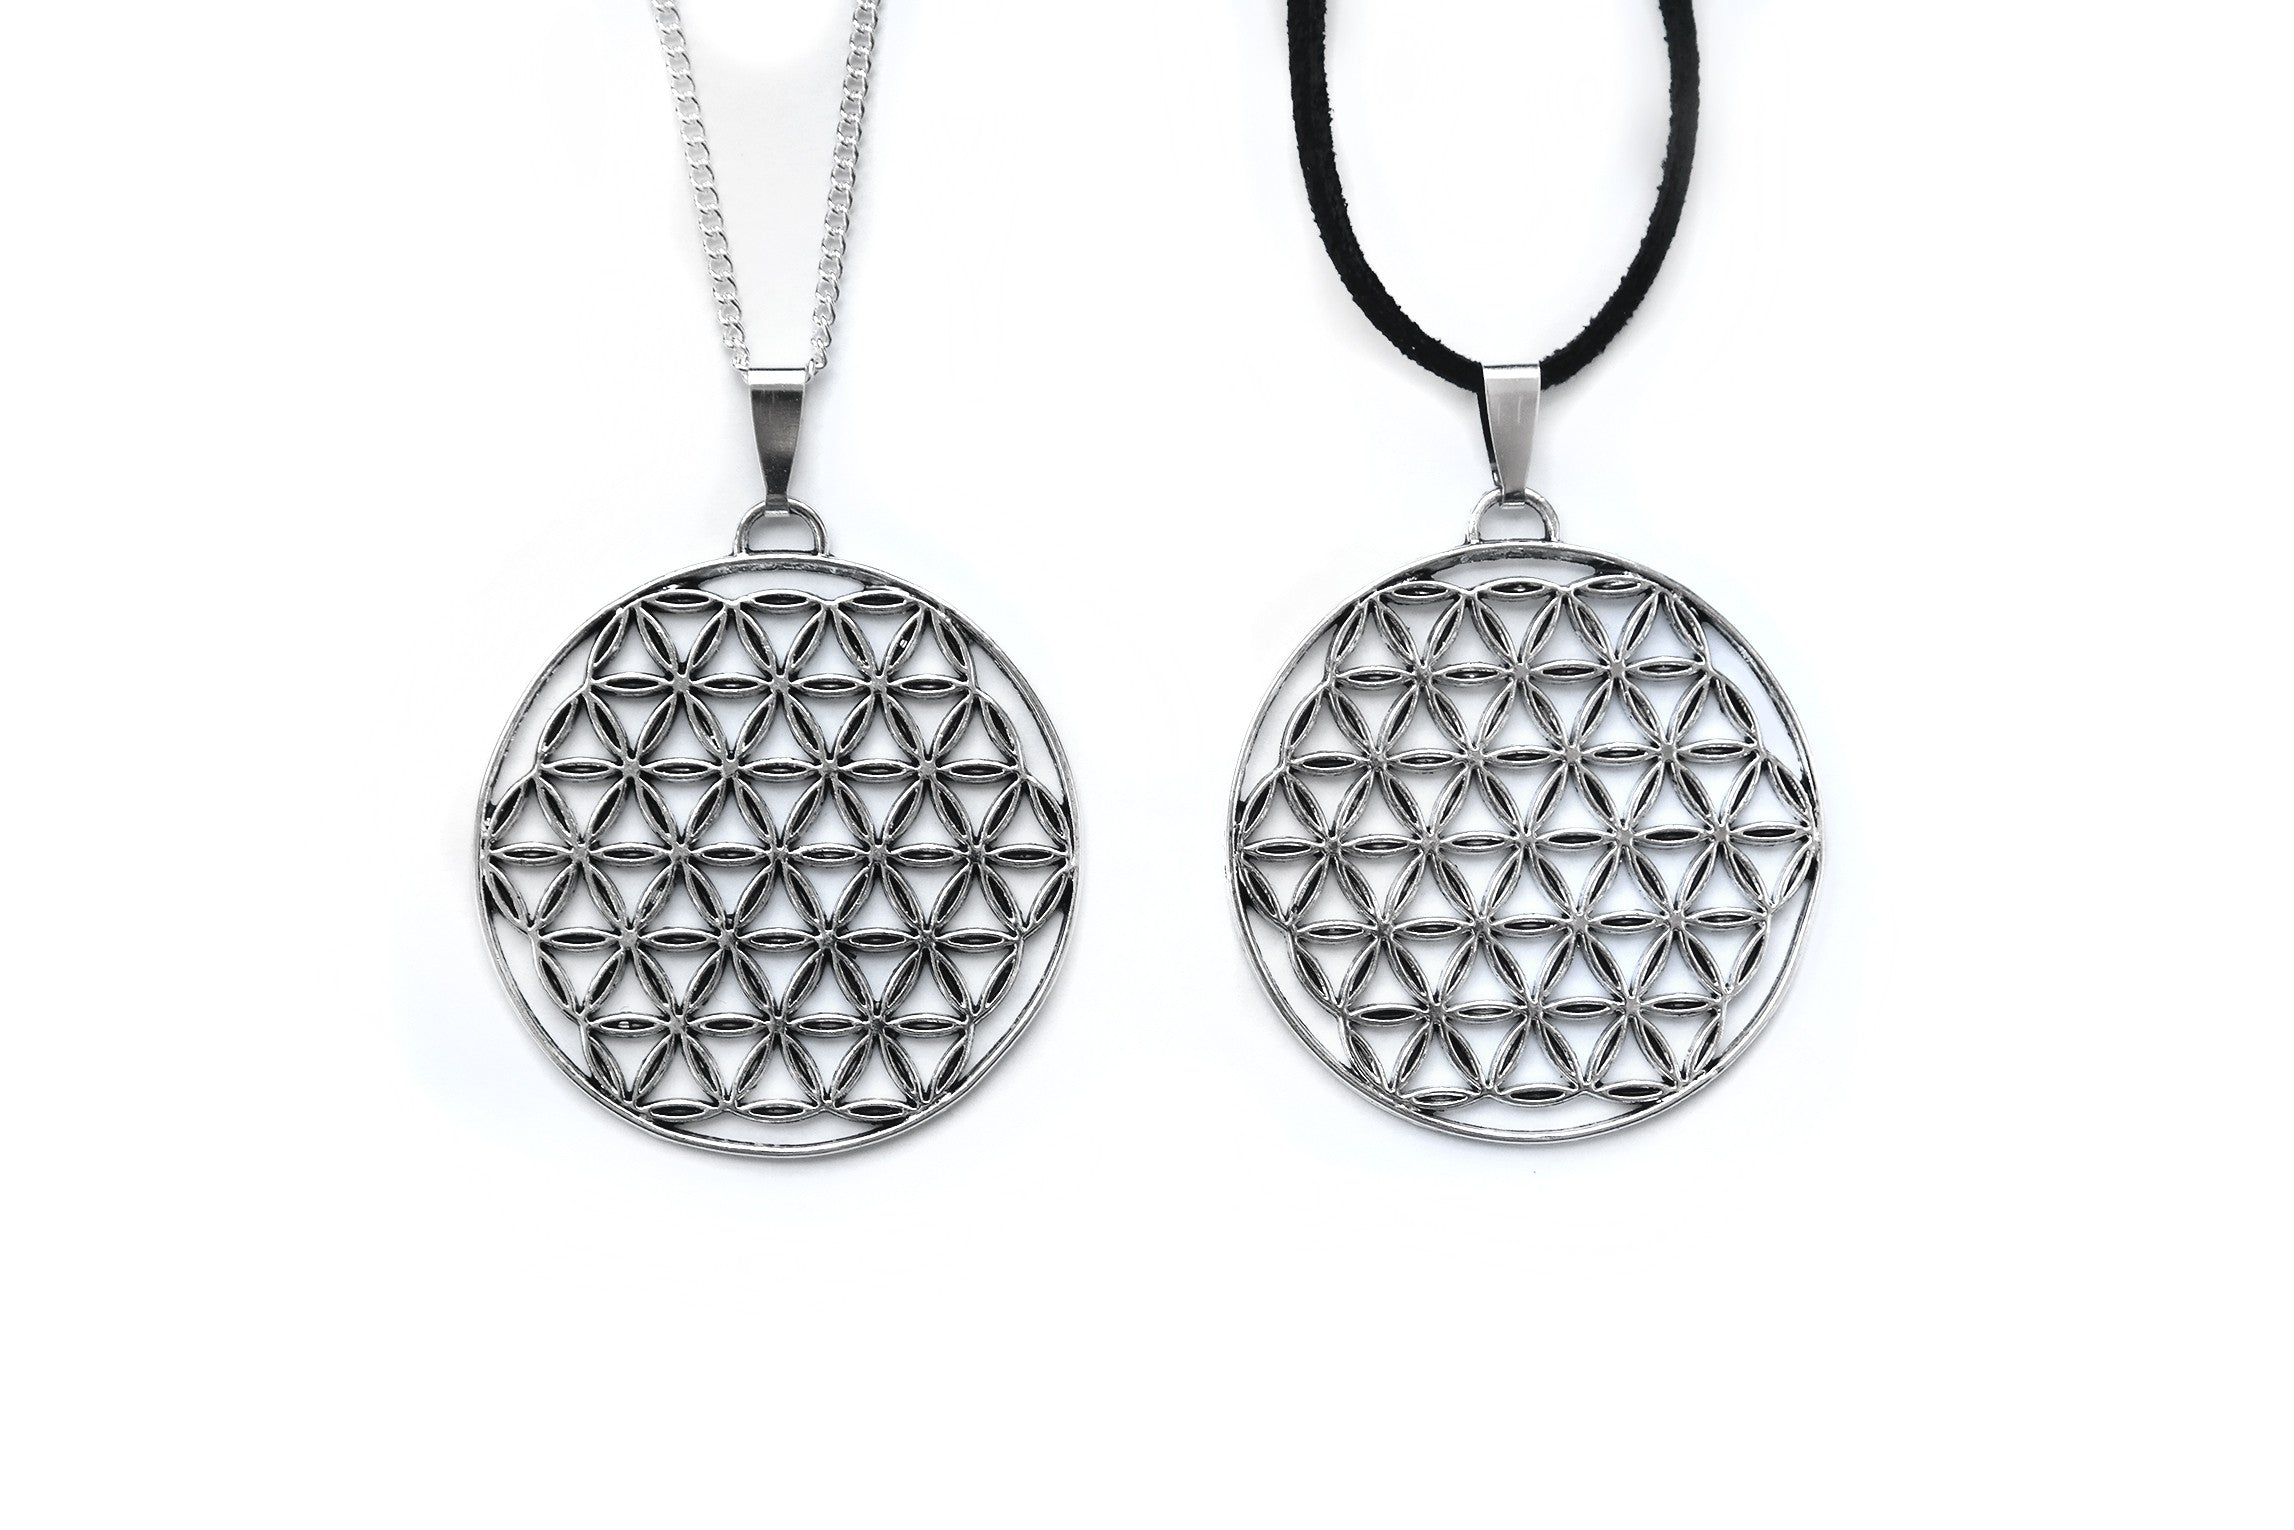 Bronze Silver Flower of Life Necklace Silber Blume des Lebens Kette Fux Jewellery